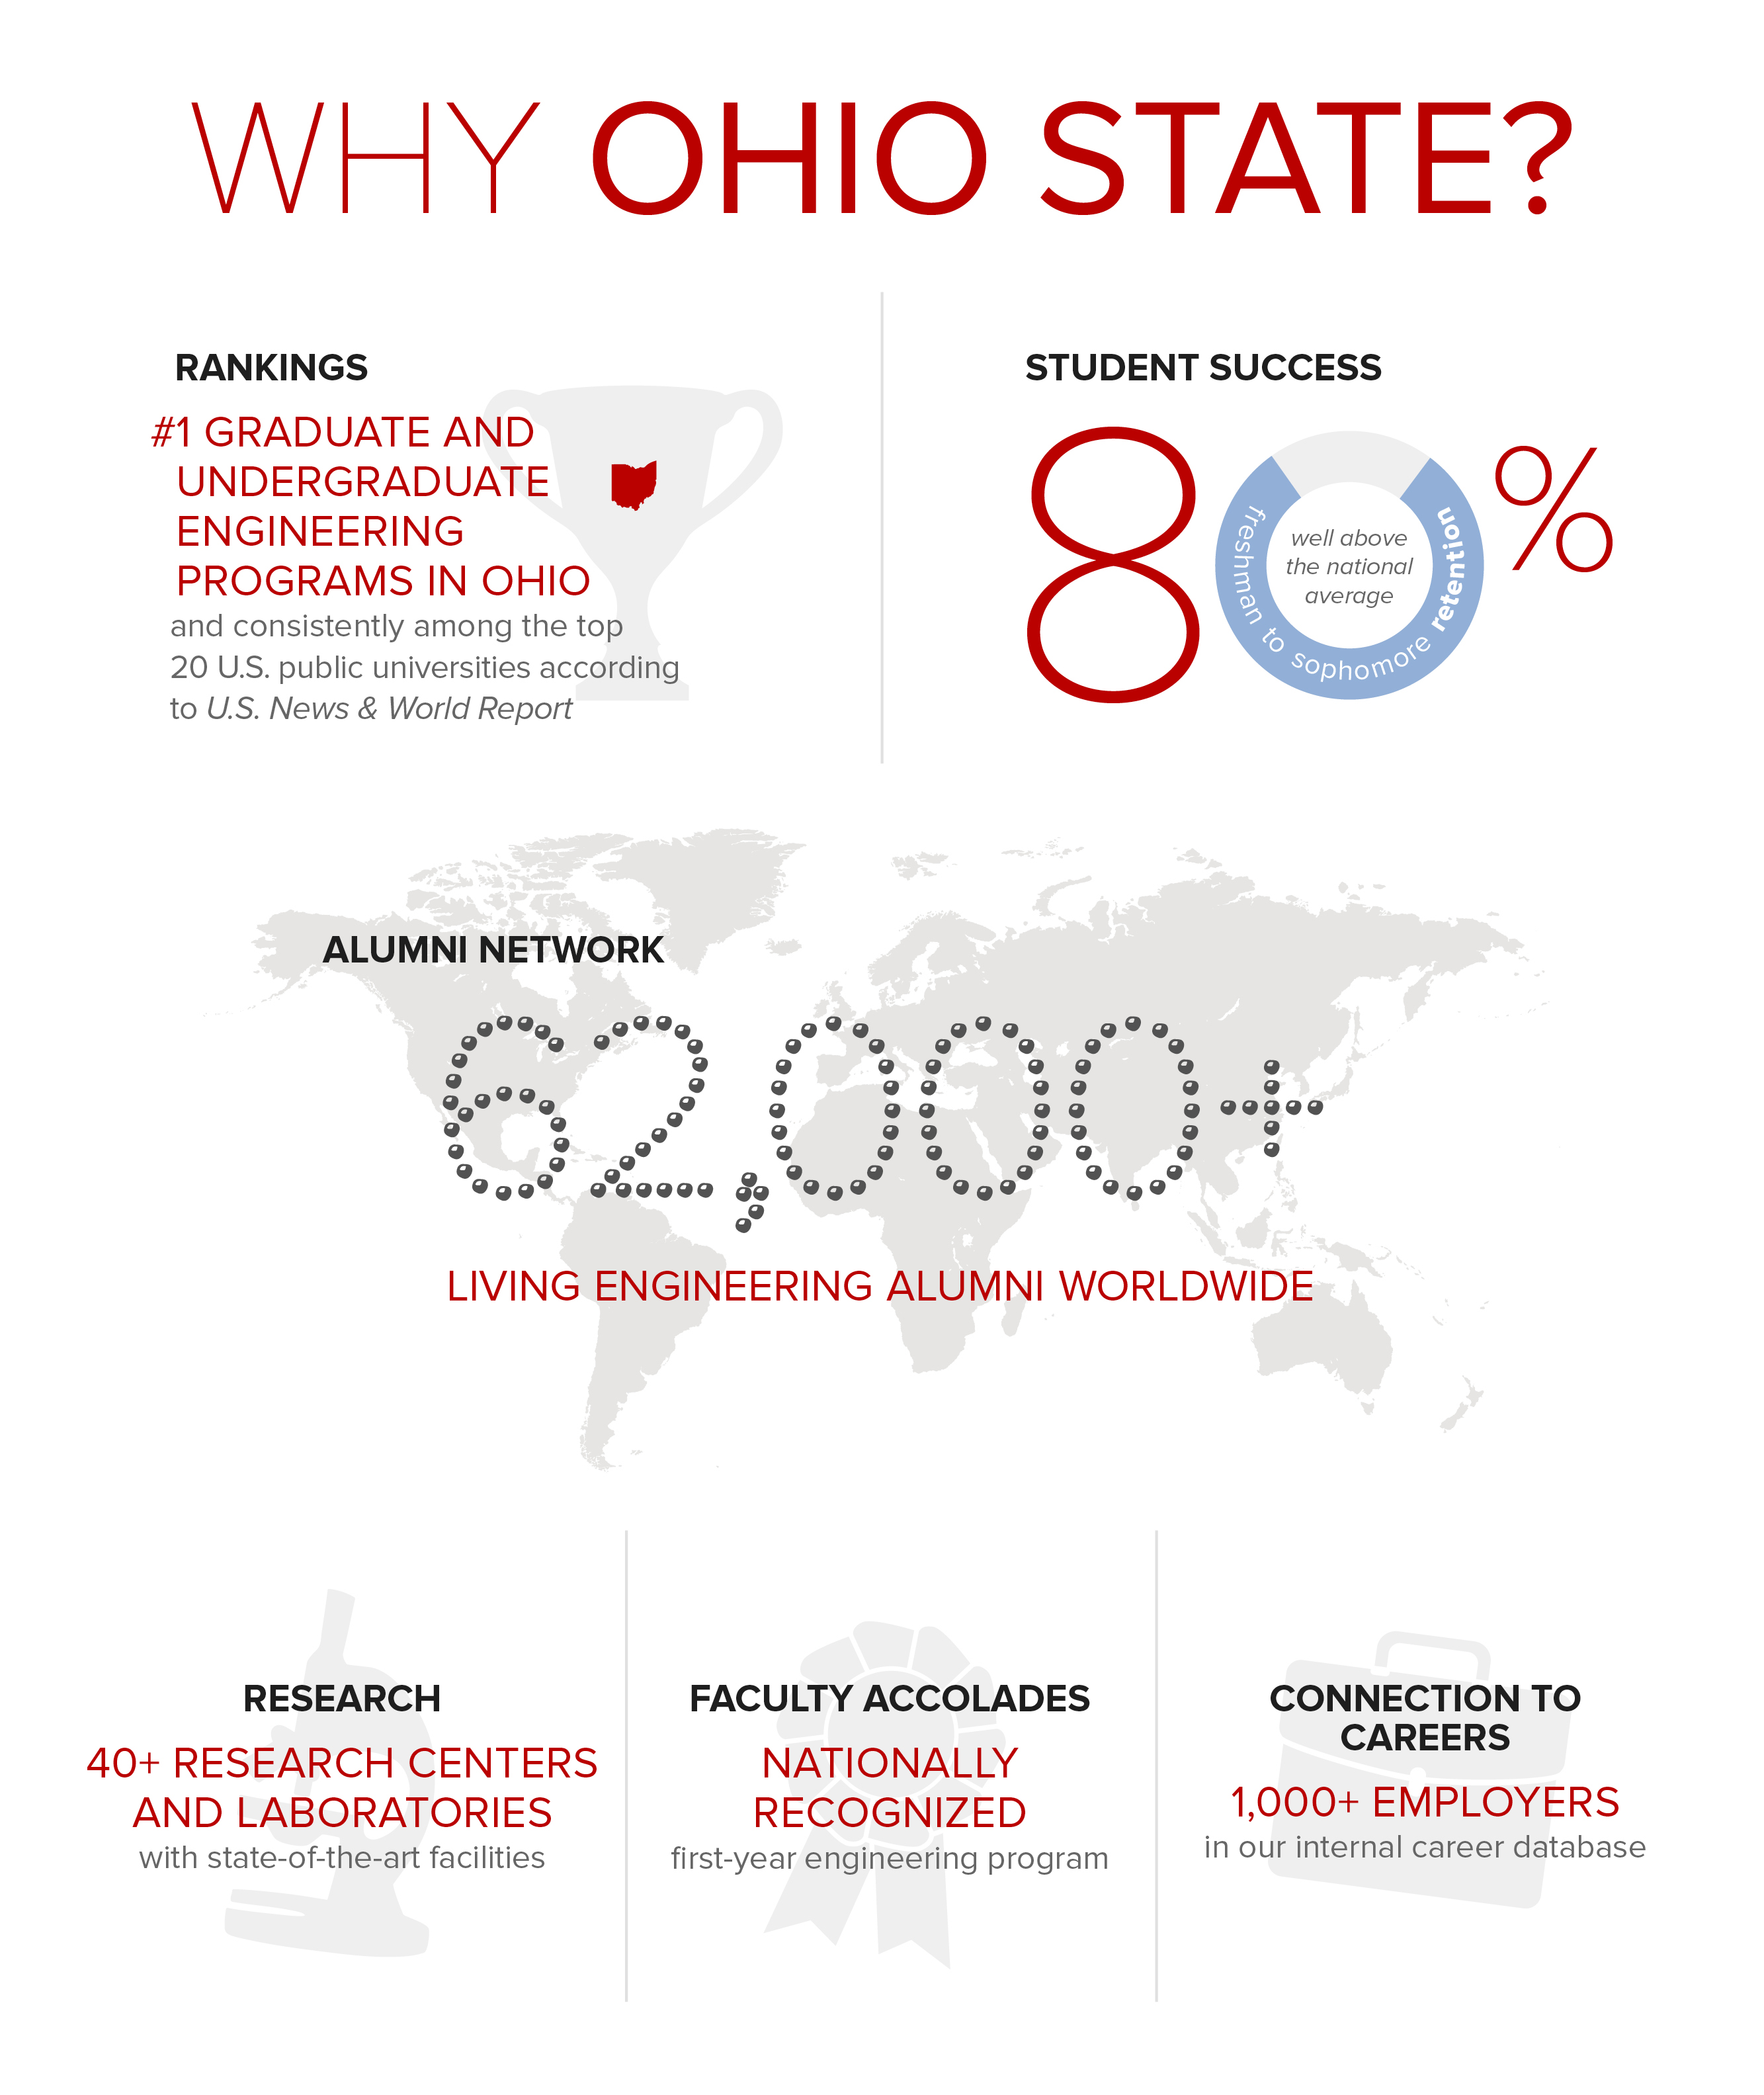 Why Ohio State infographic